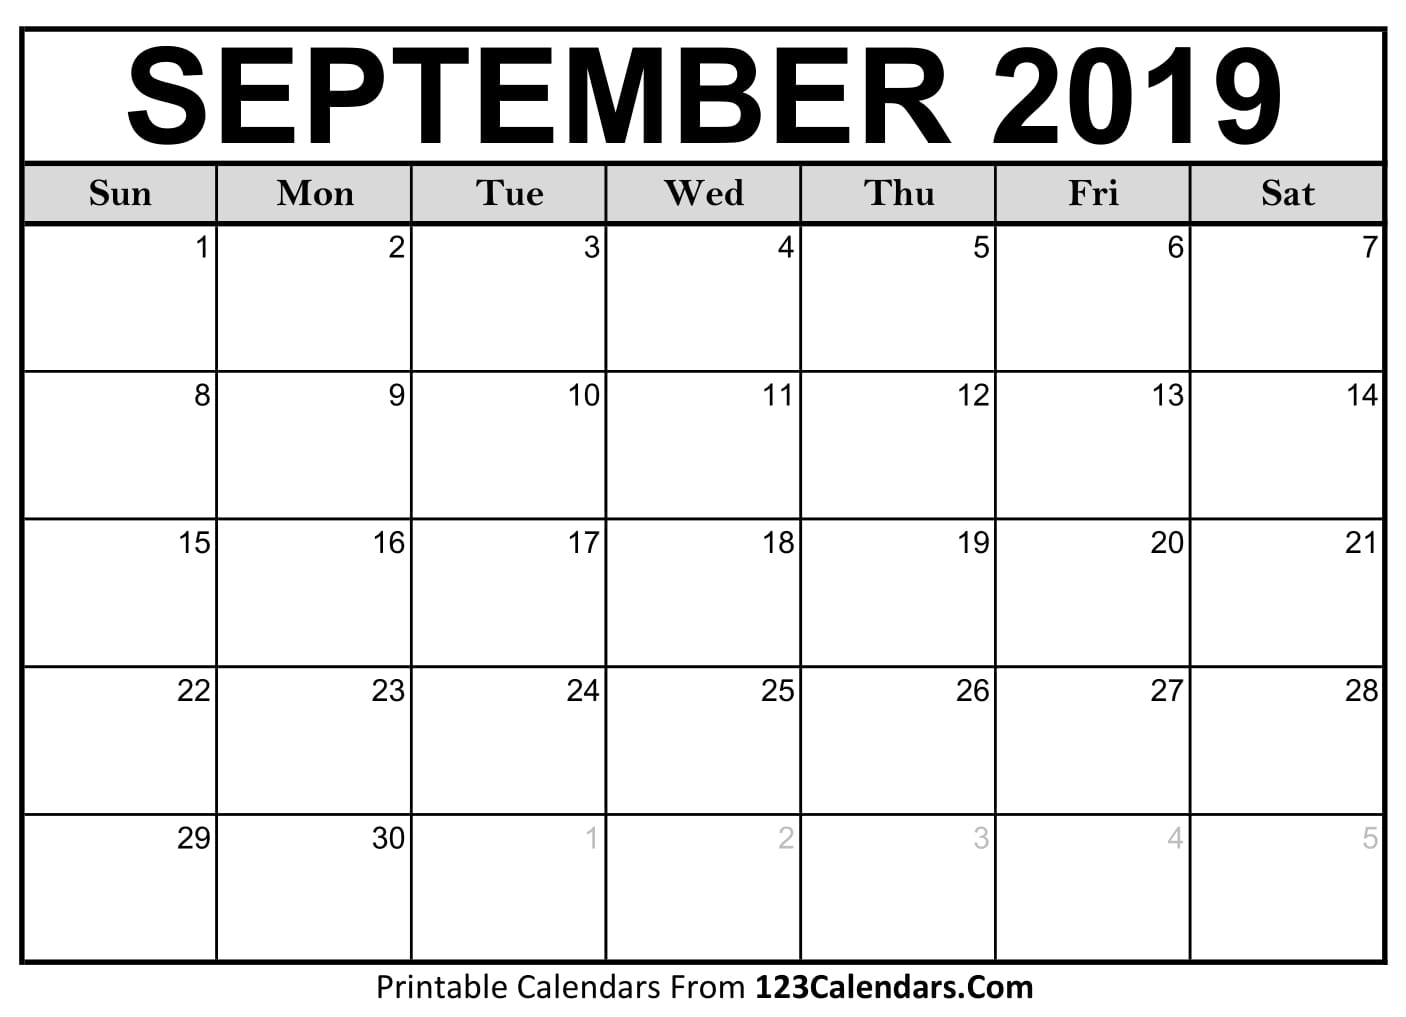 September 2019 Printable Calendar | 123Calendars pertaining to Printable Calendar By Month You Can Schedule In